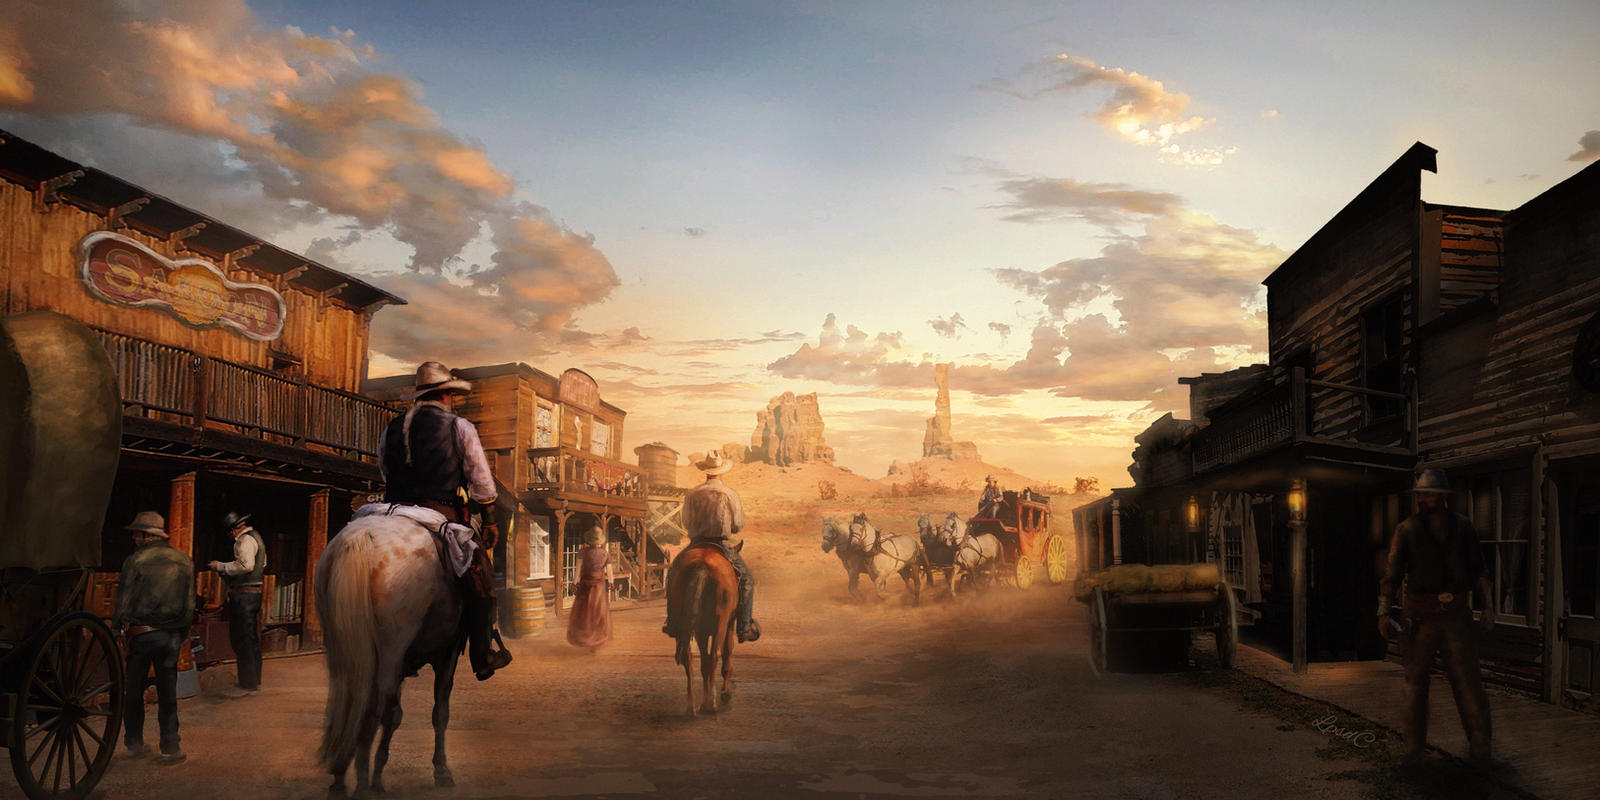 A Town in the Desert